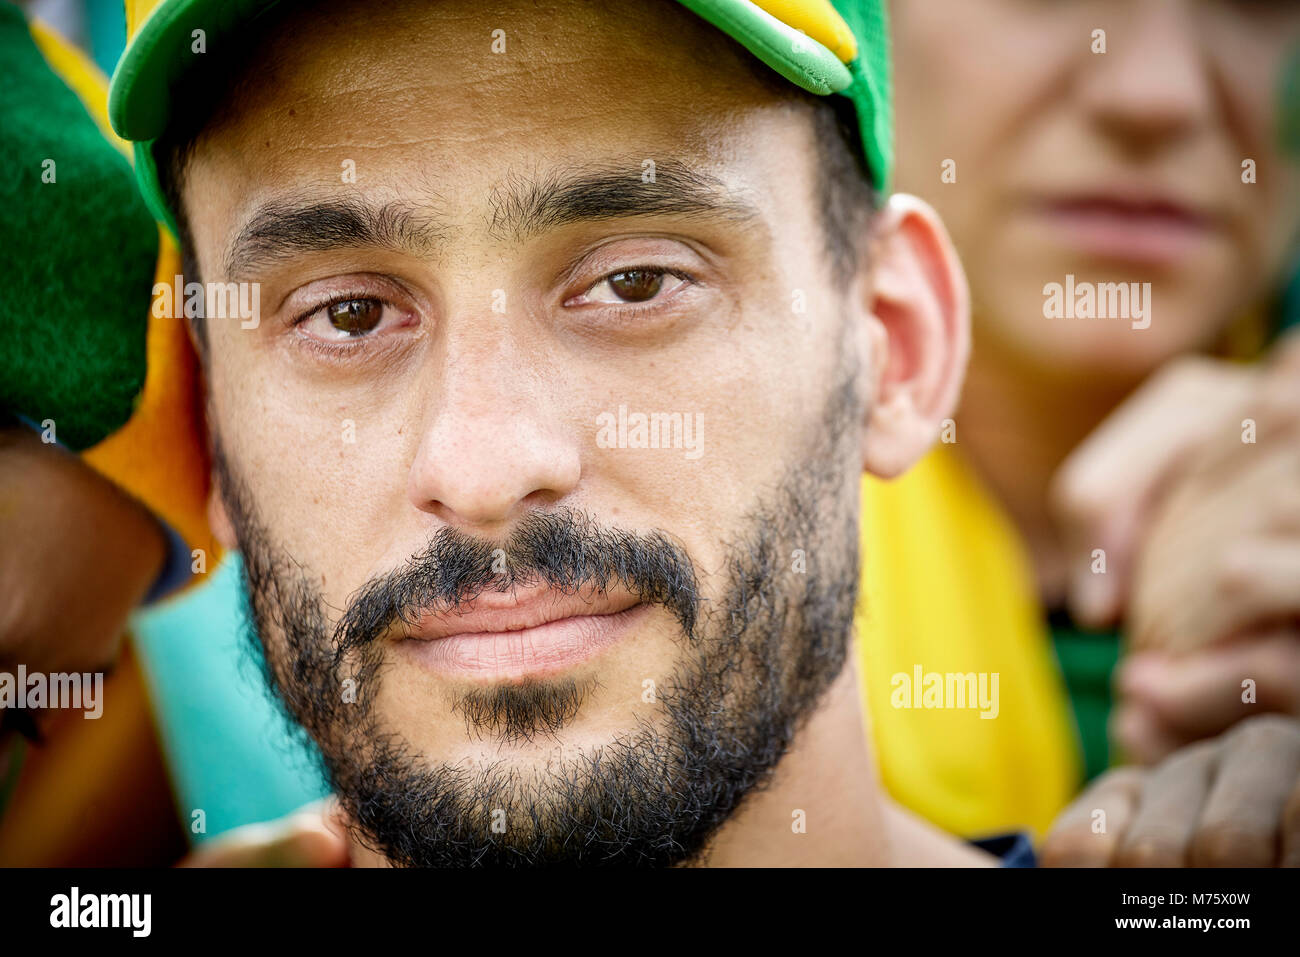 Football fan with tears in his eyes, portrait - Stock Image